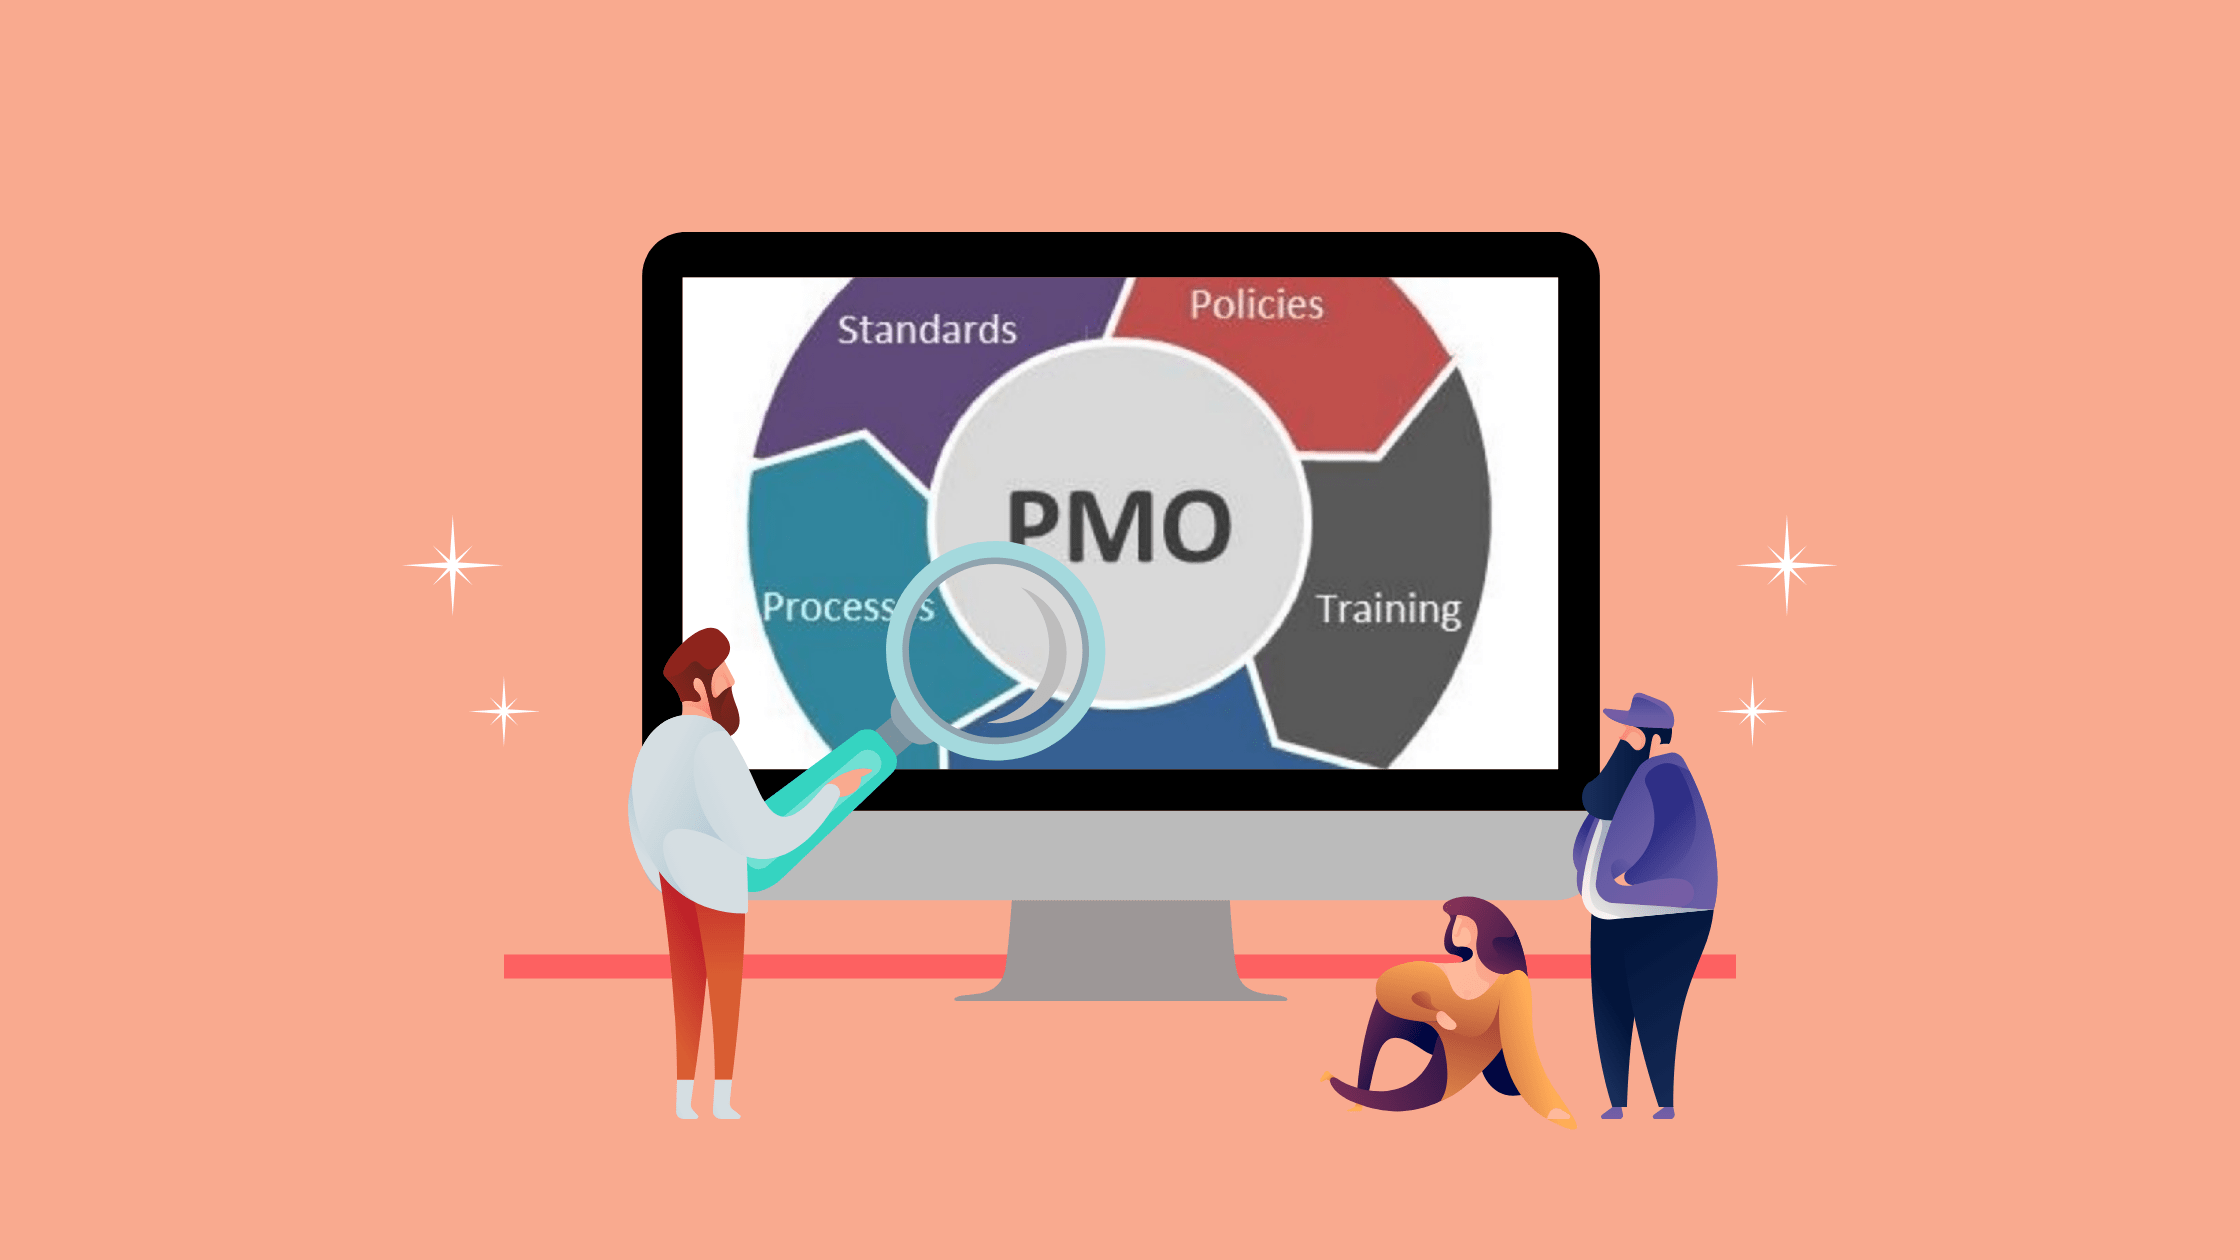 PMO Portfolio Management Office